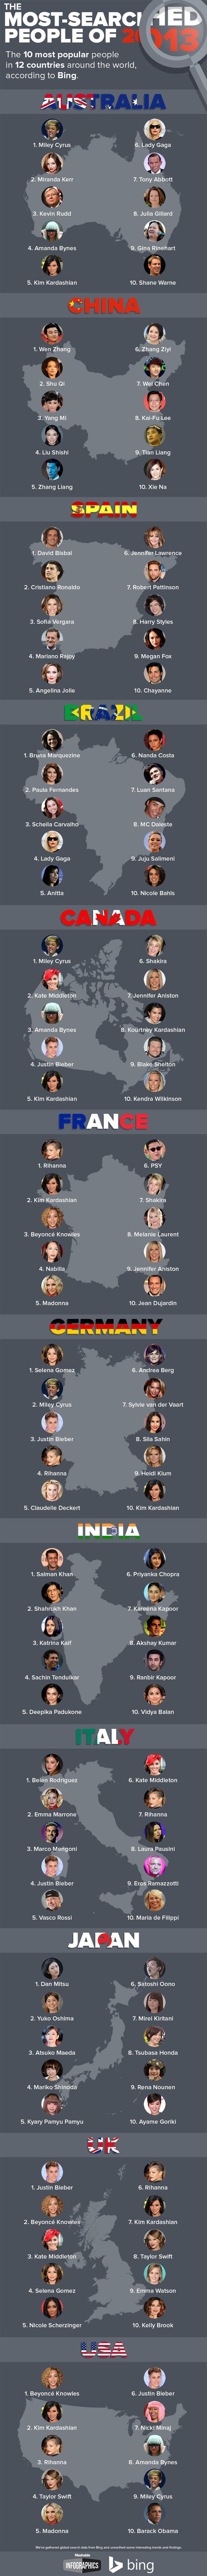 From the Kardashians to Kate Middleton, Miley Cyrus to Amanda Bynes, here's an infographic that highlights the 10 most-searched people in 12 countries.